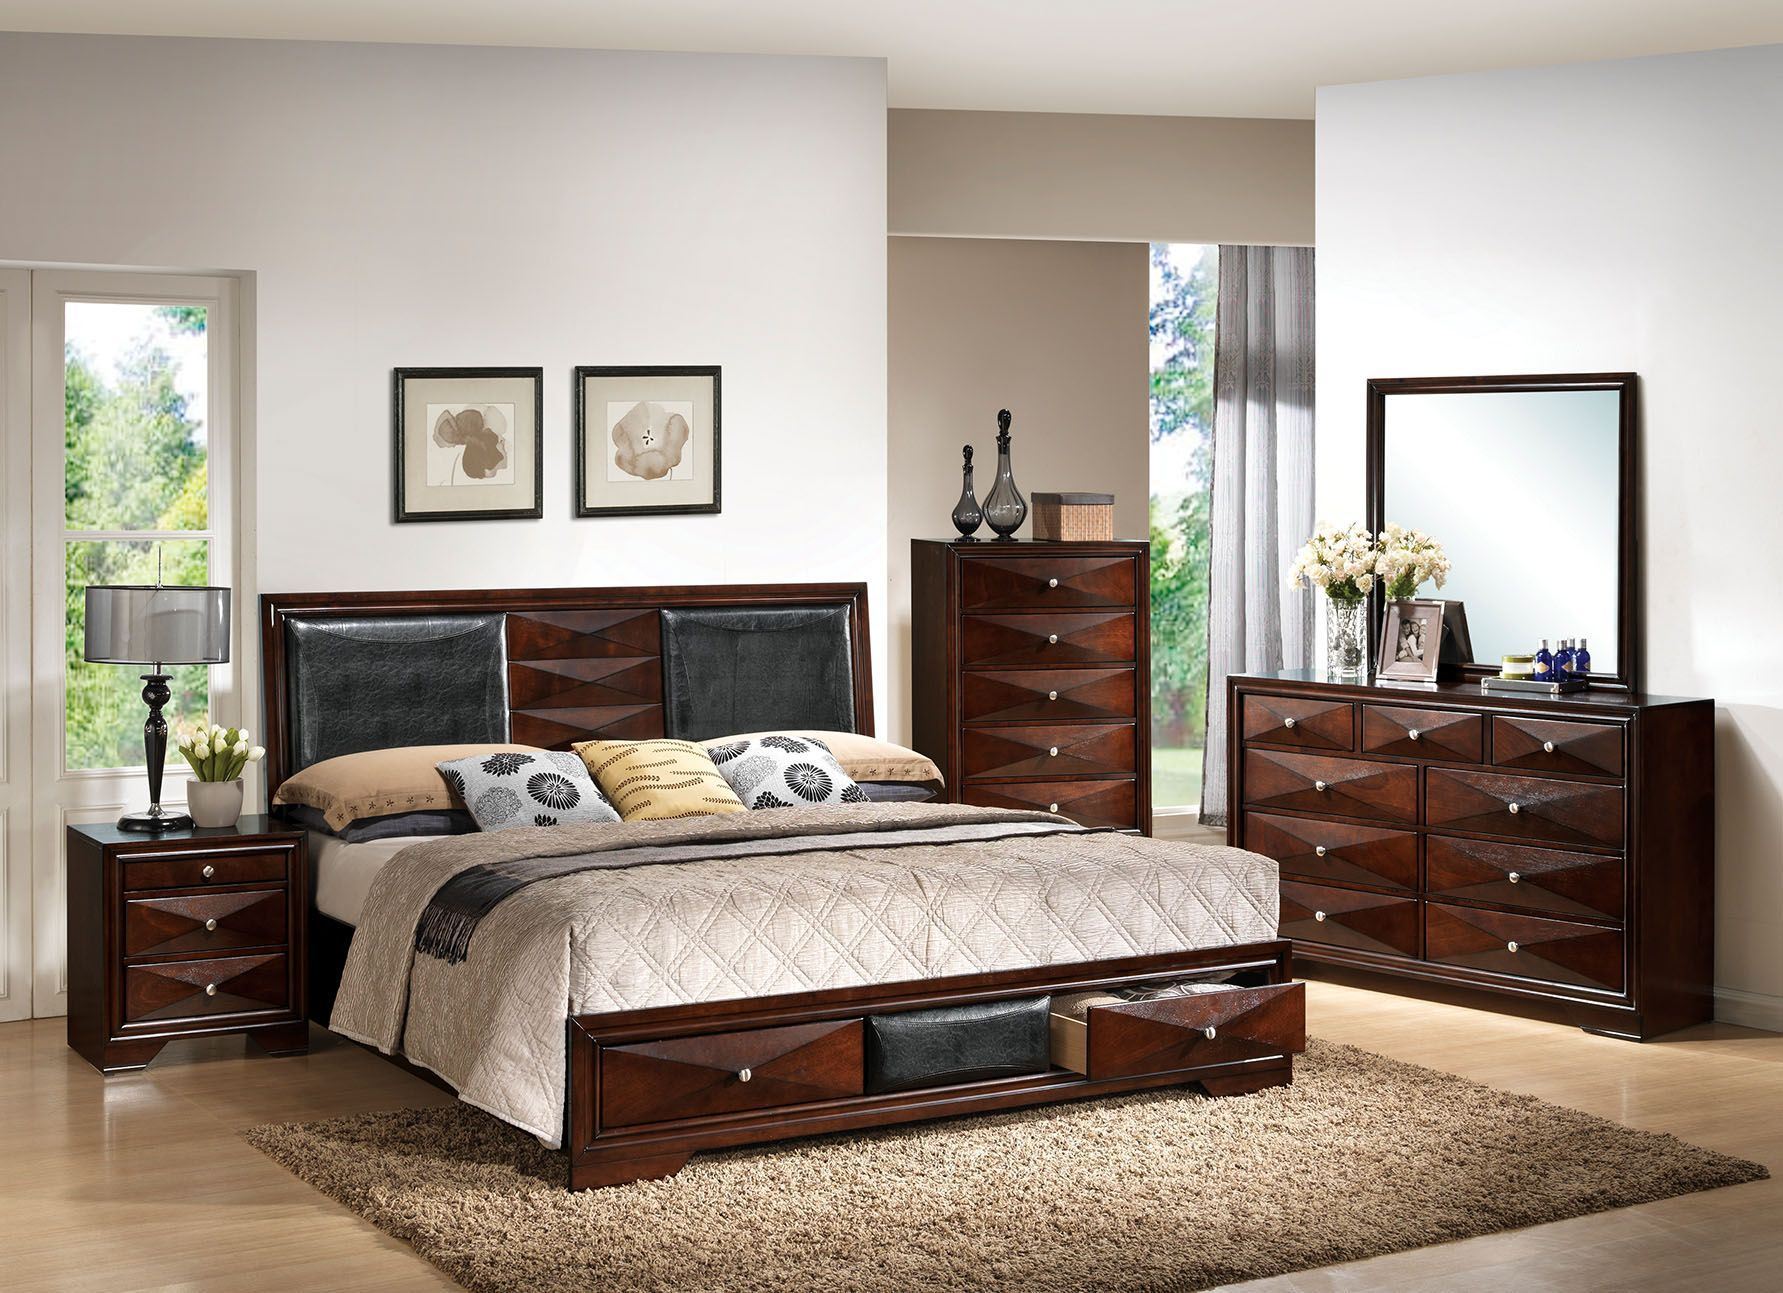 Pin on SEP272017 THE PALMS FURNITURE